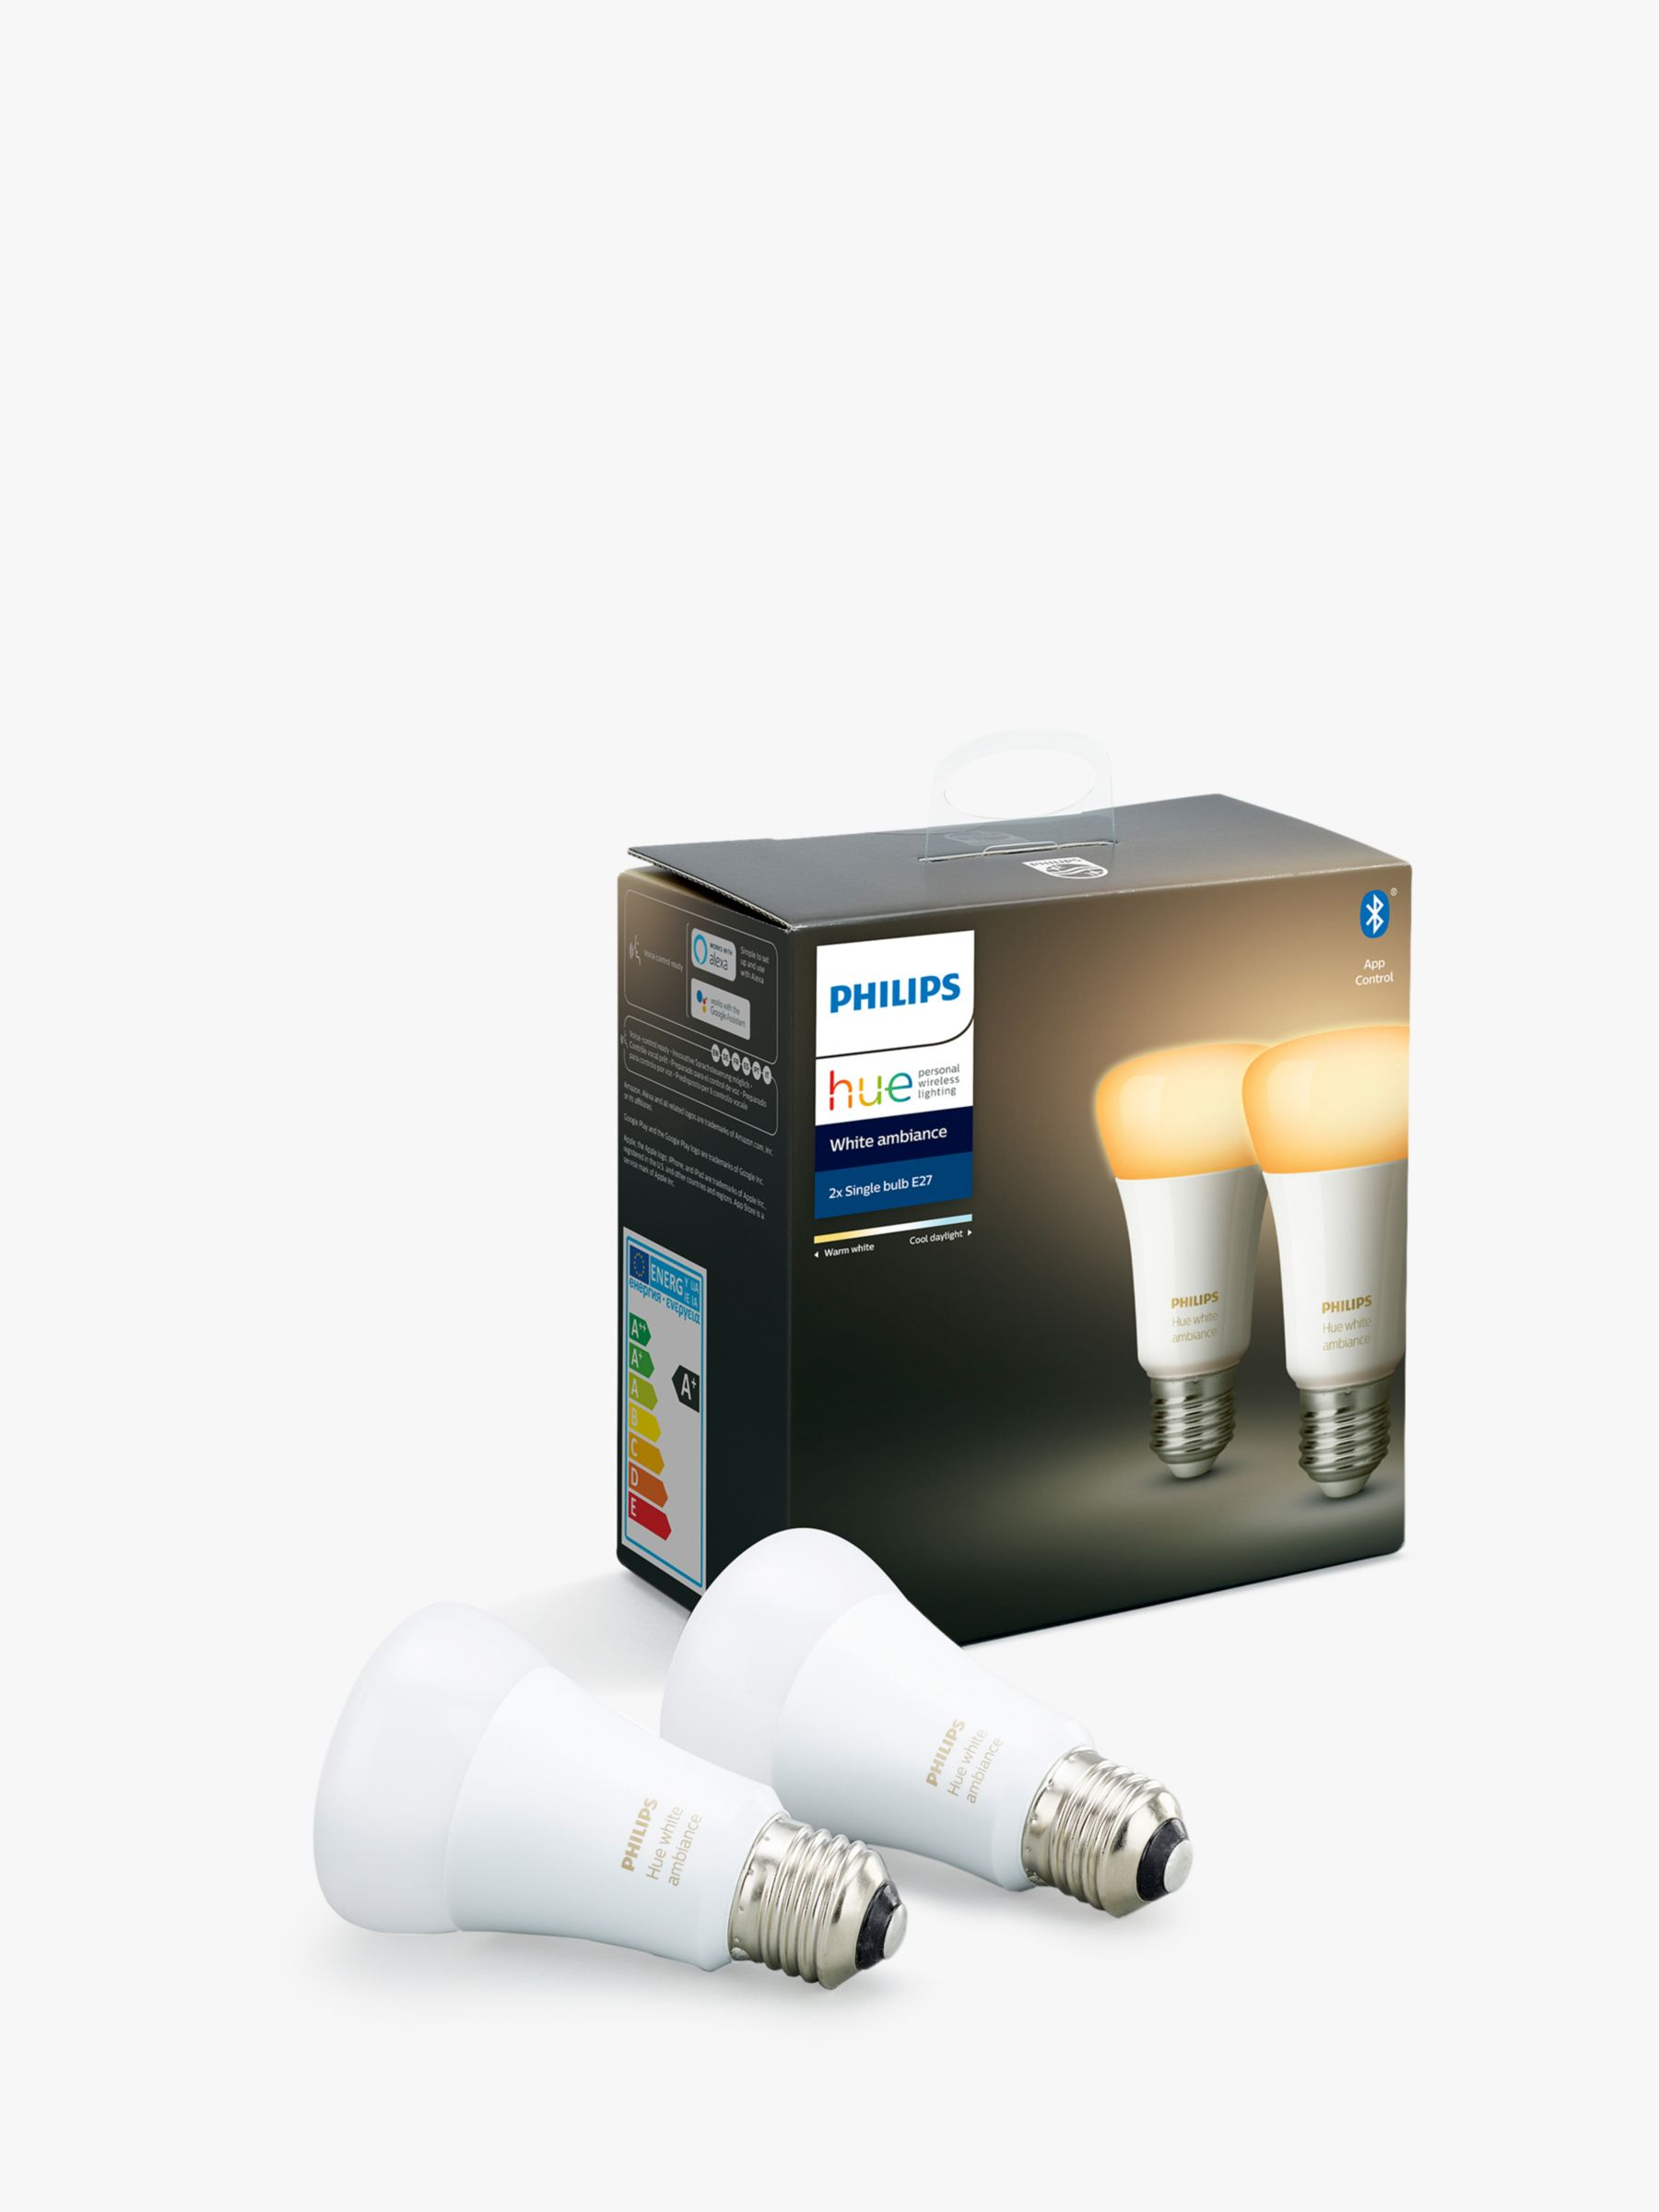 Philips Philips Hue White Ambiance Wireless Lighting LED Light Bulb with Bluetooth, 9W A60 E27 Edison Screw Cap Bulb, Pack of 2